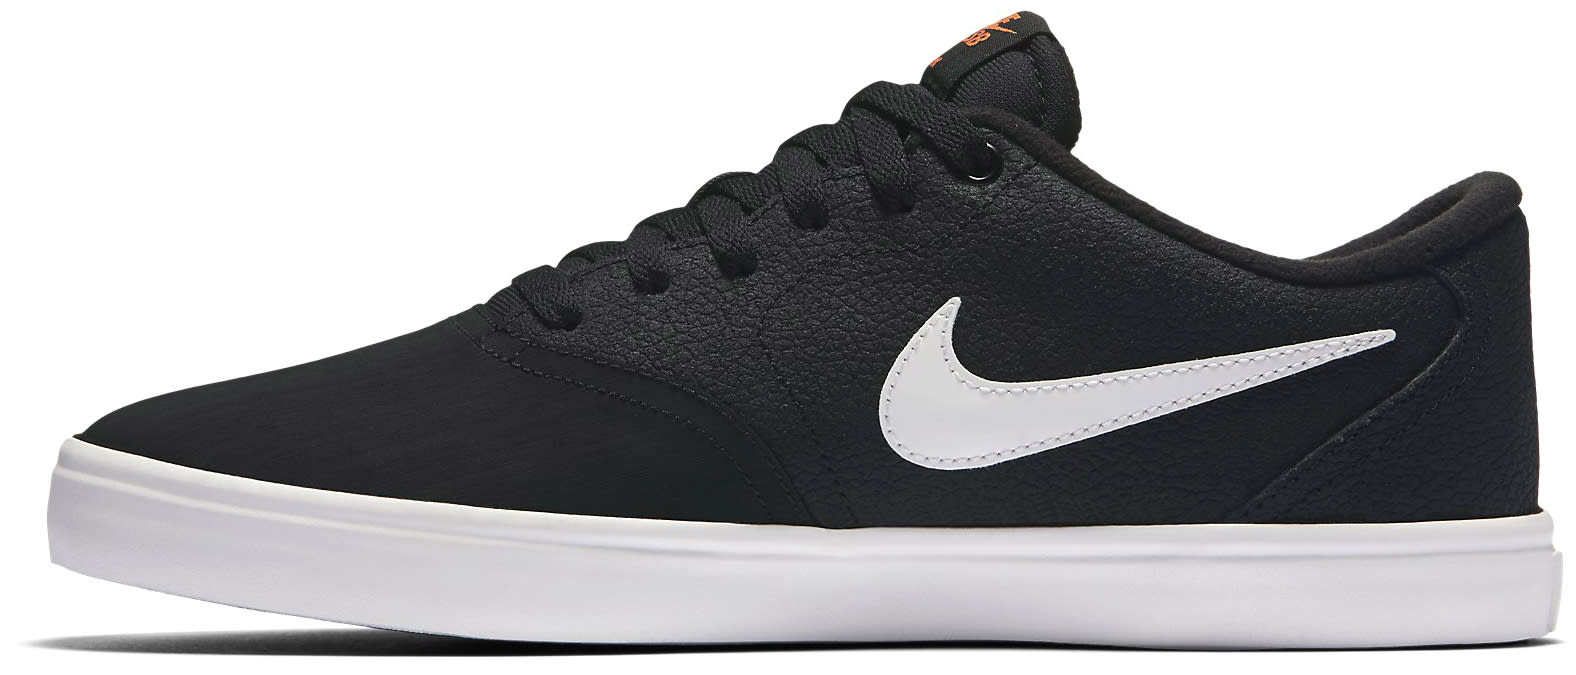 Nike Sb Check Solar Premium Skate Shoes